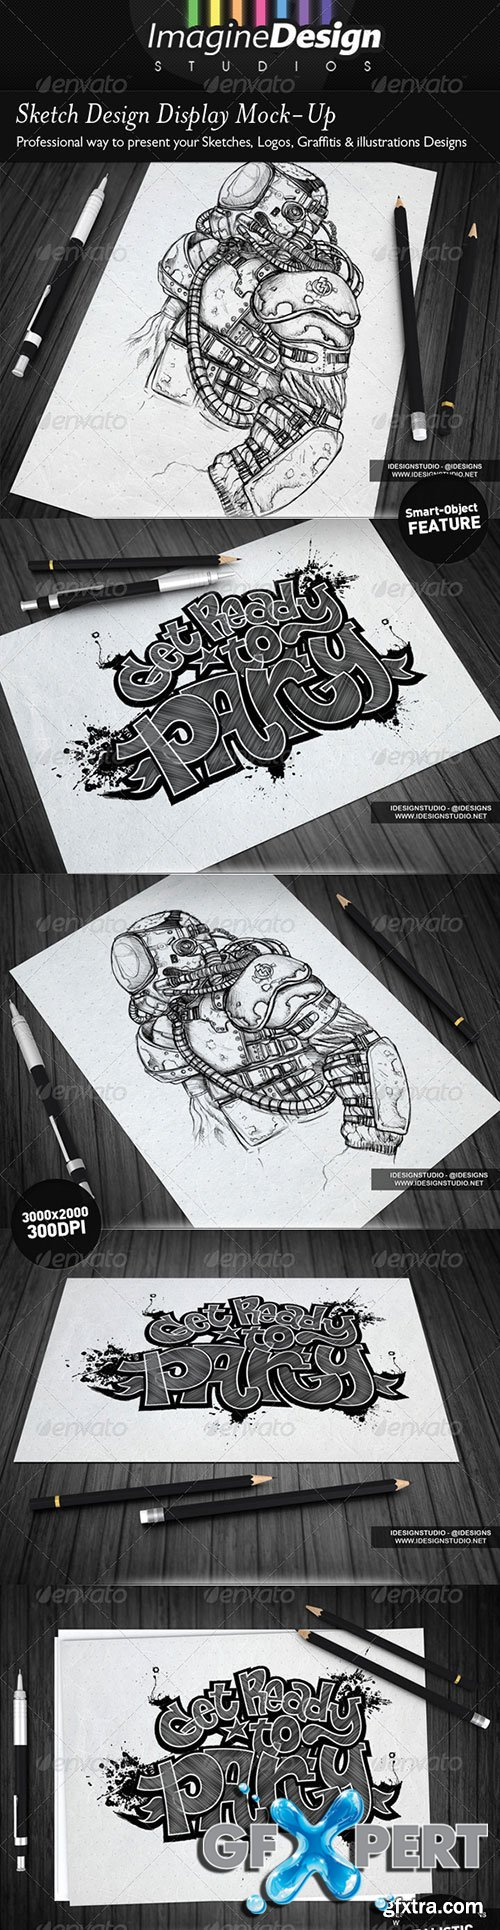 GraphicRiver - Sketch Designs Display Mock-Up